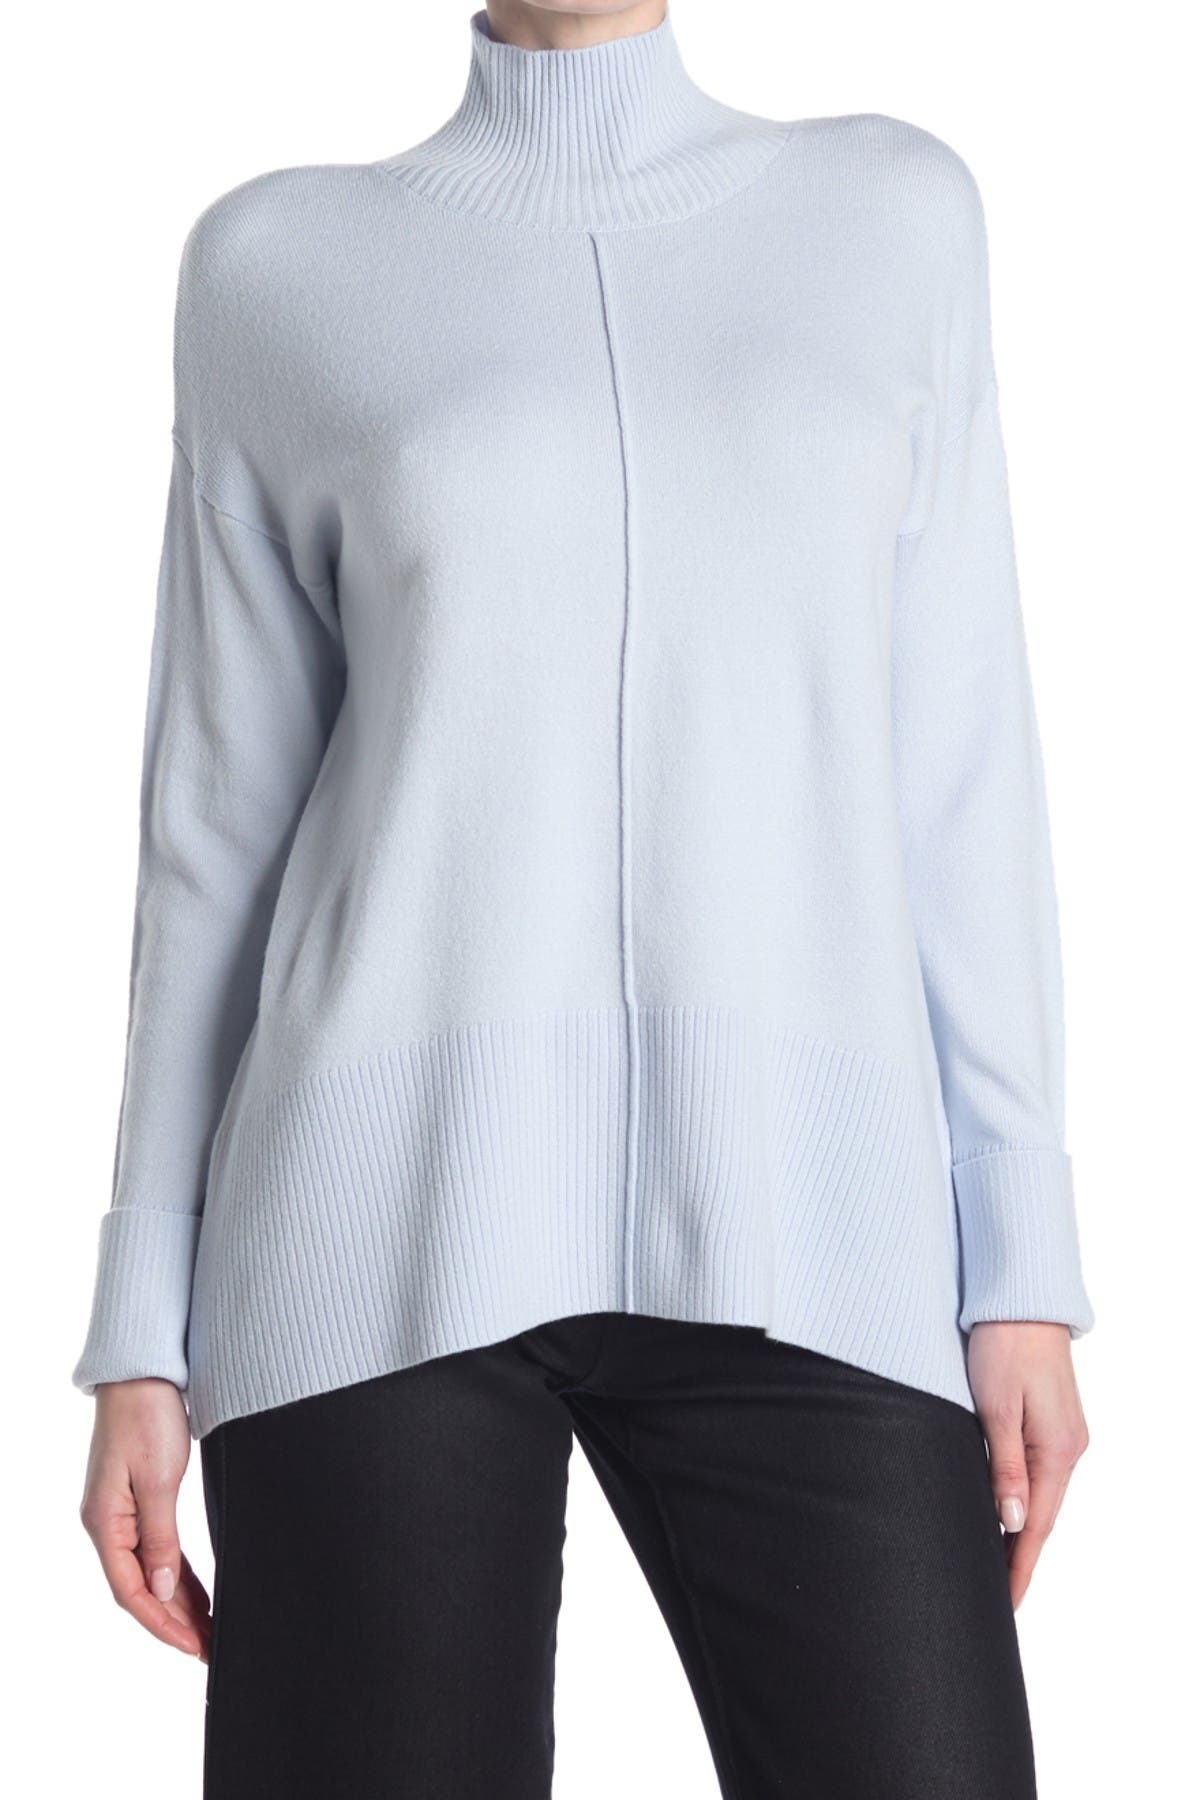 Image of French Connection Babysoft High Neck Center Seam Jumper